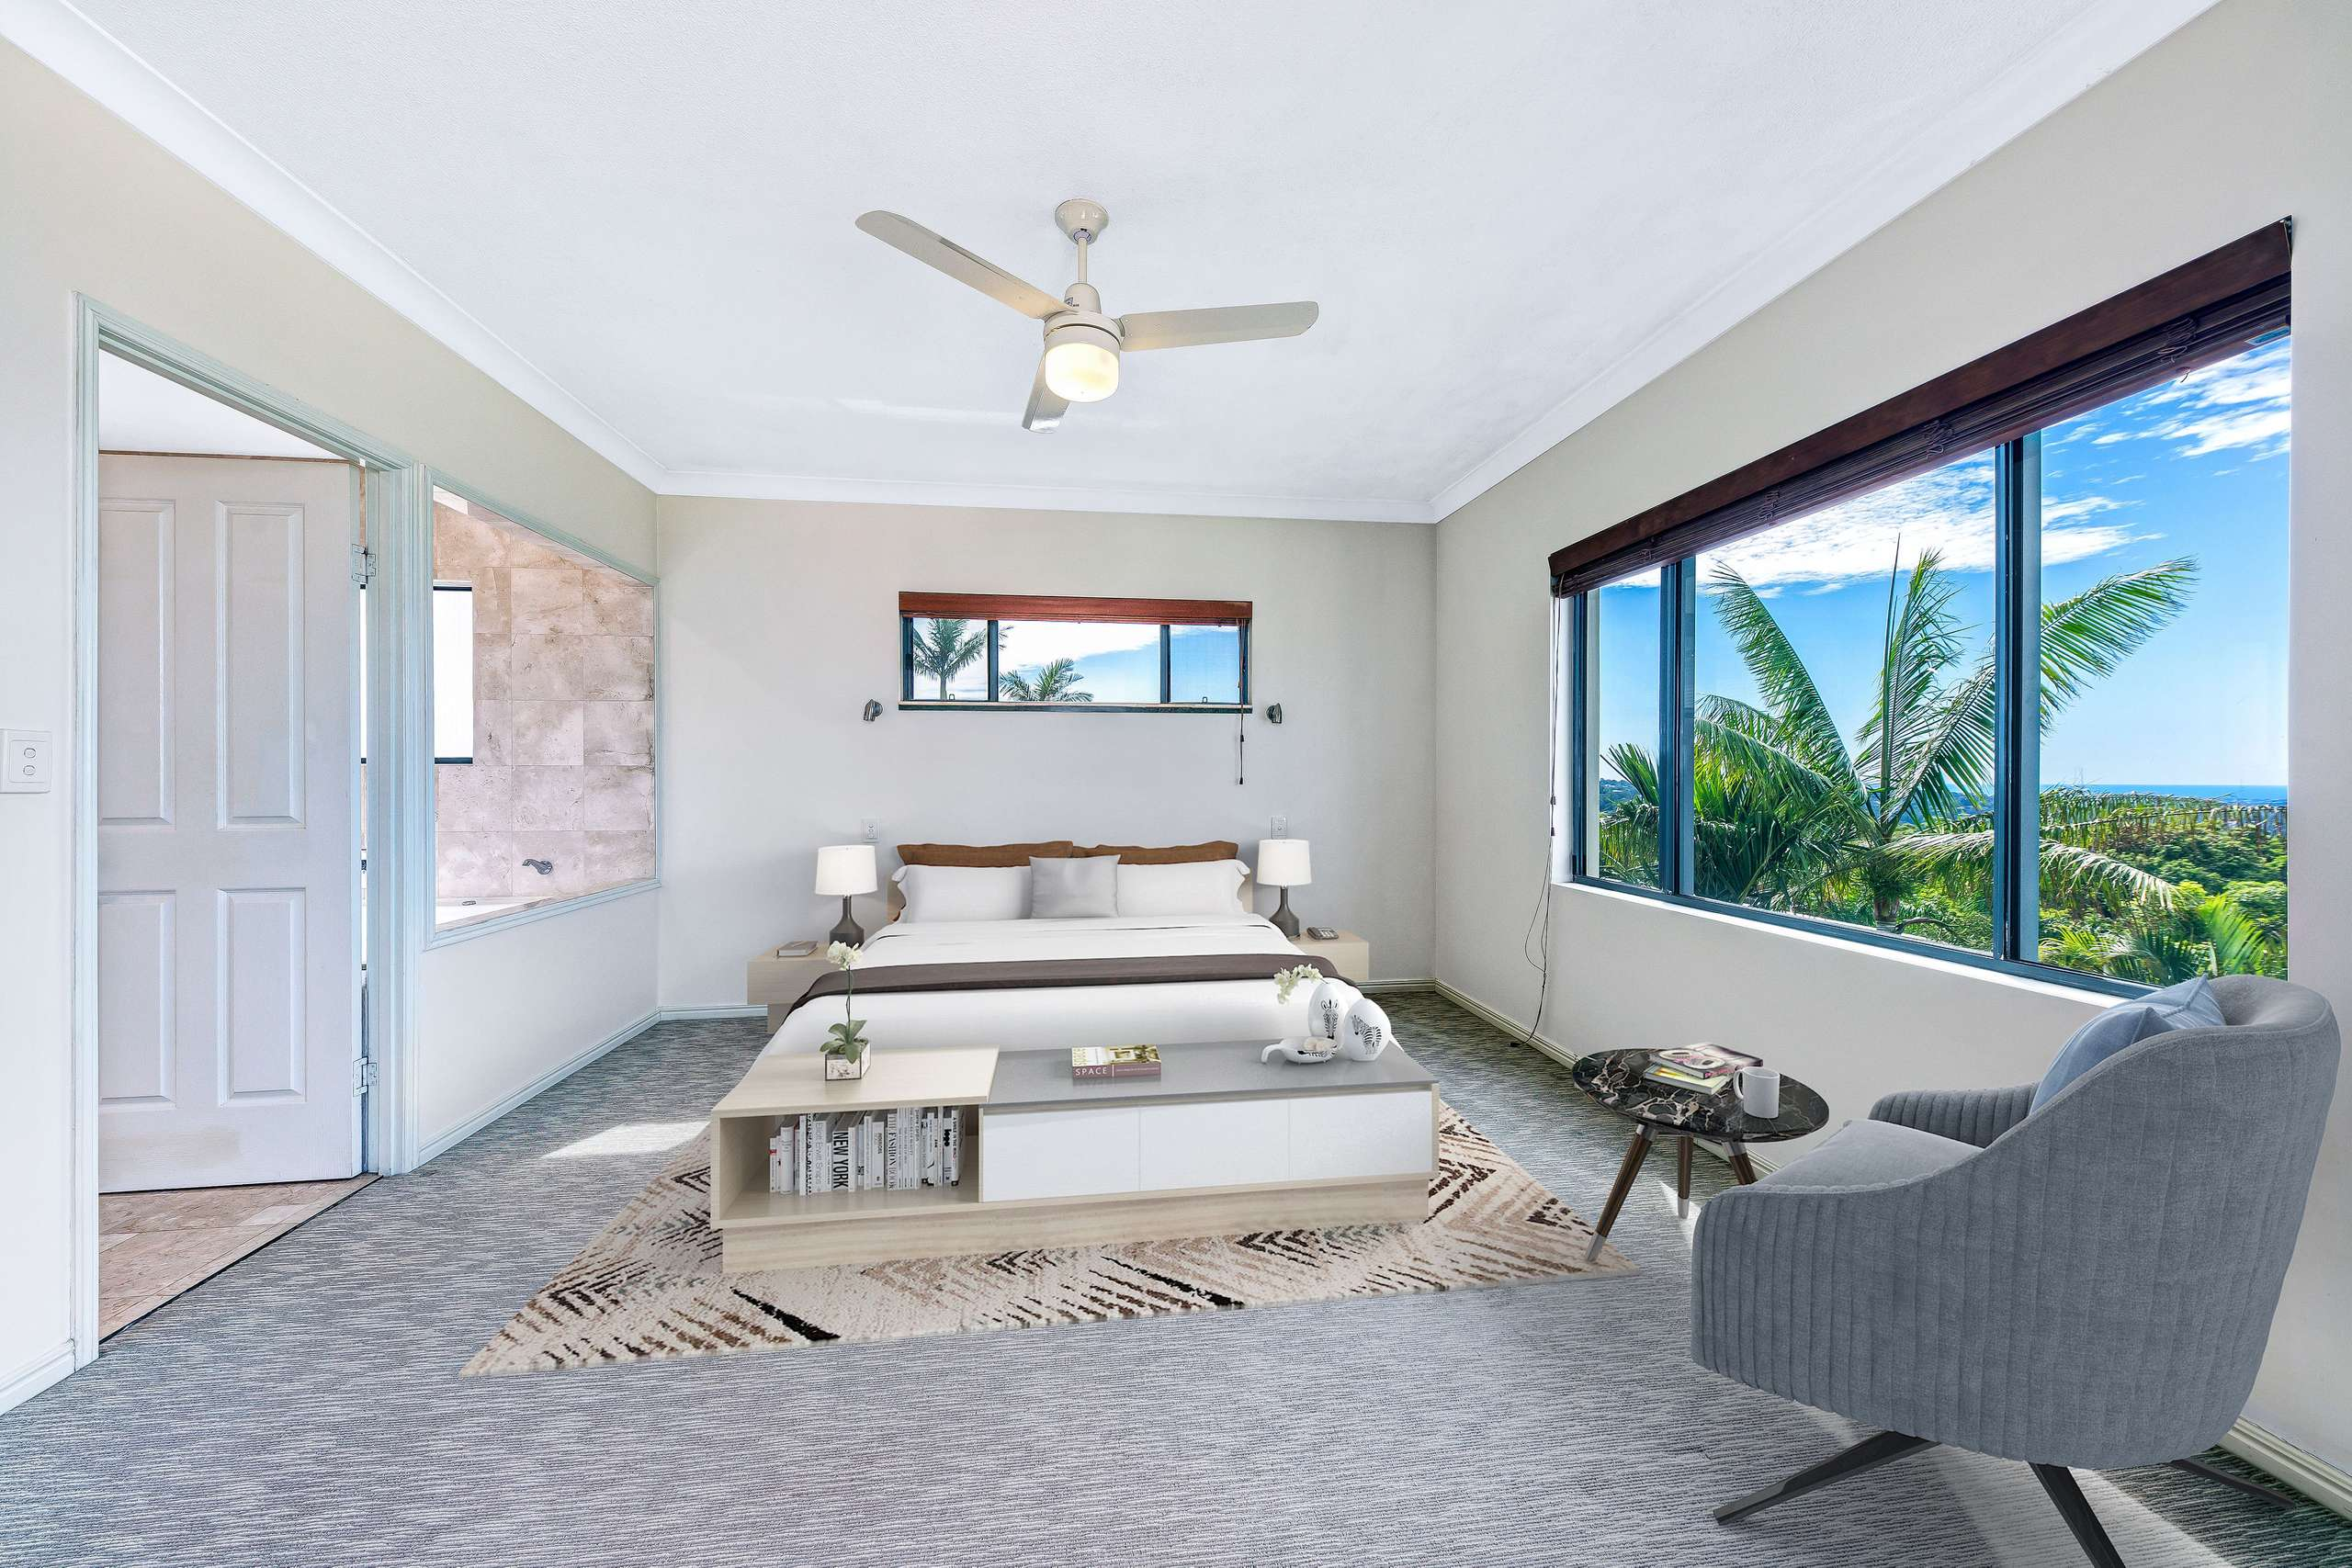 ray white buderim rental application